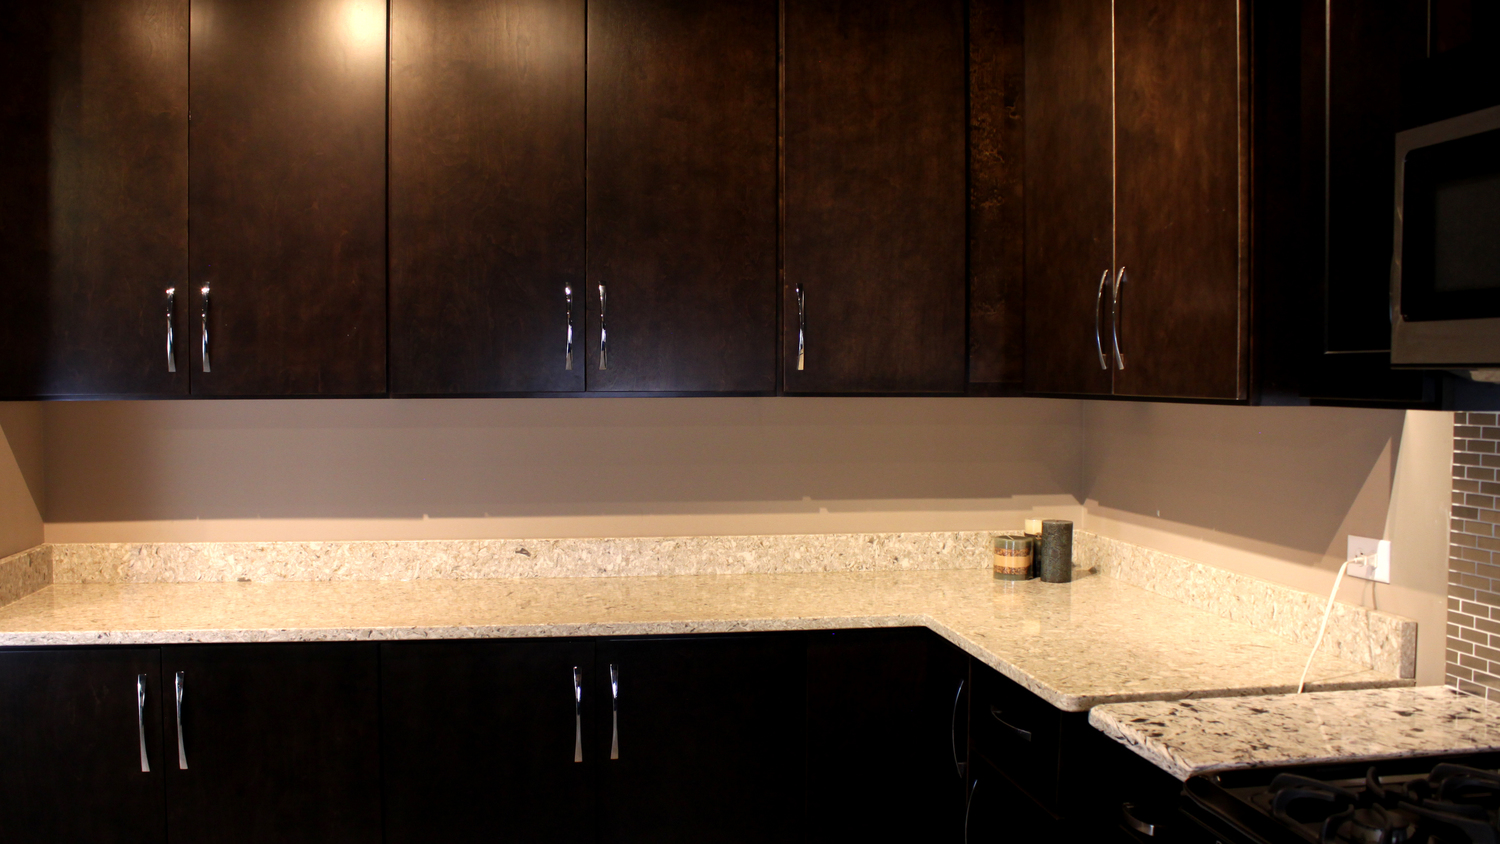 Measuring For Granite Kitchen Countertop Des Plaines Kitchen Cabinets Sinks And Countertops Rock Counter